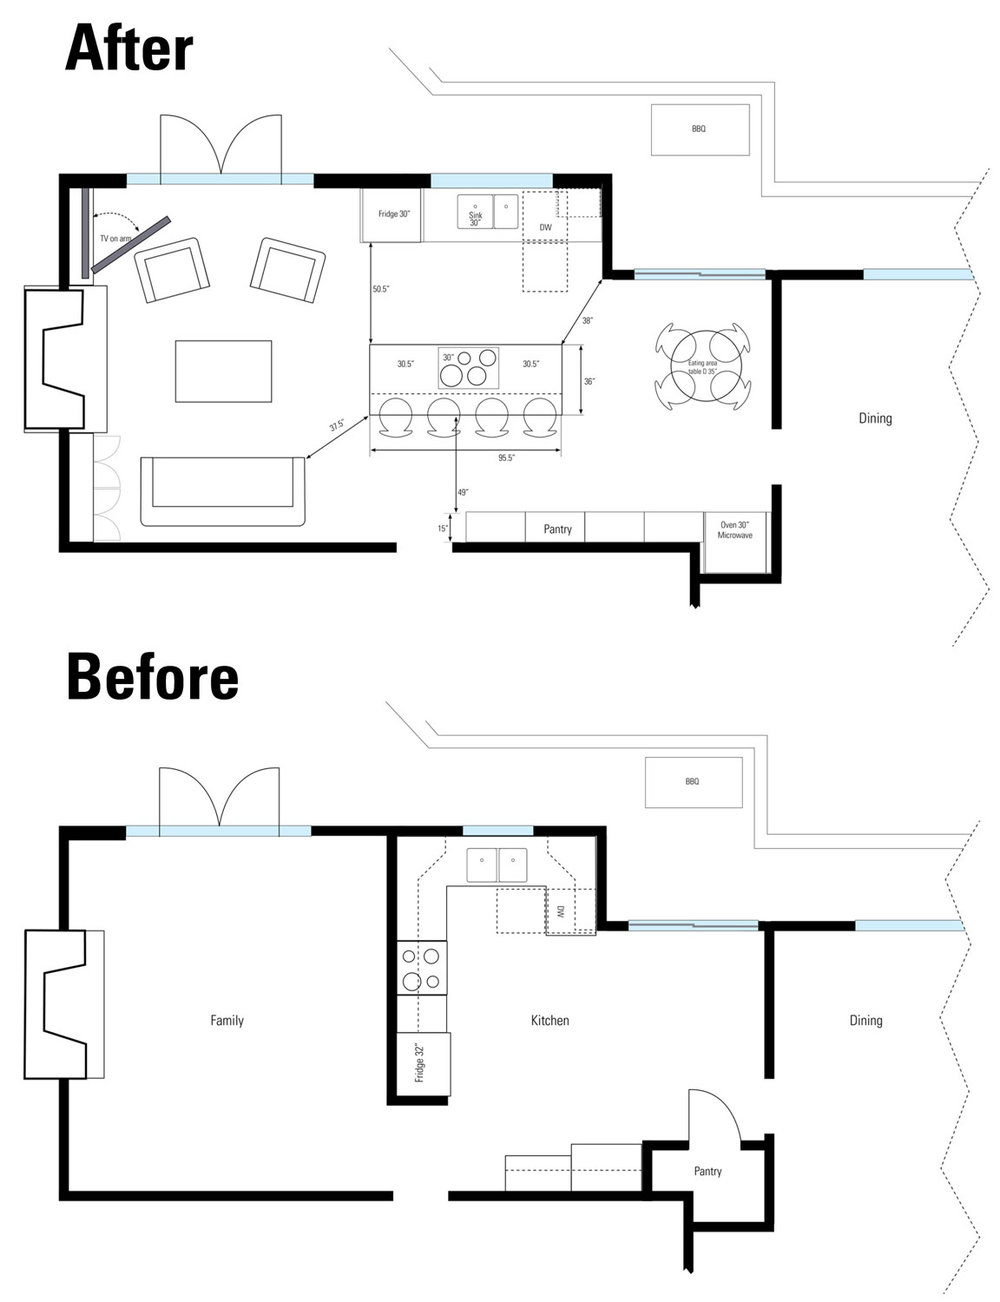 Tempe Kitchen layout before after.jpg